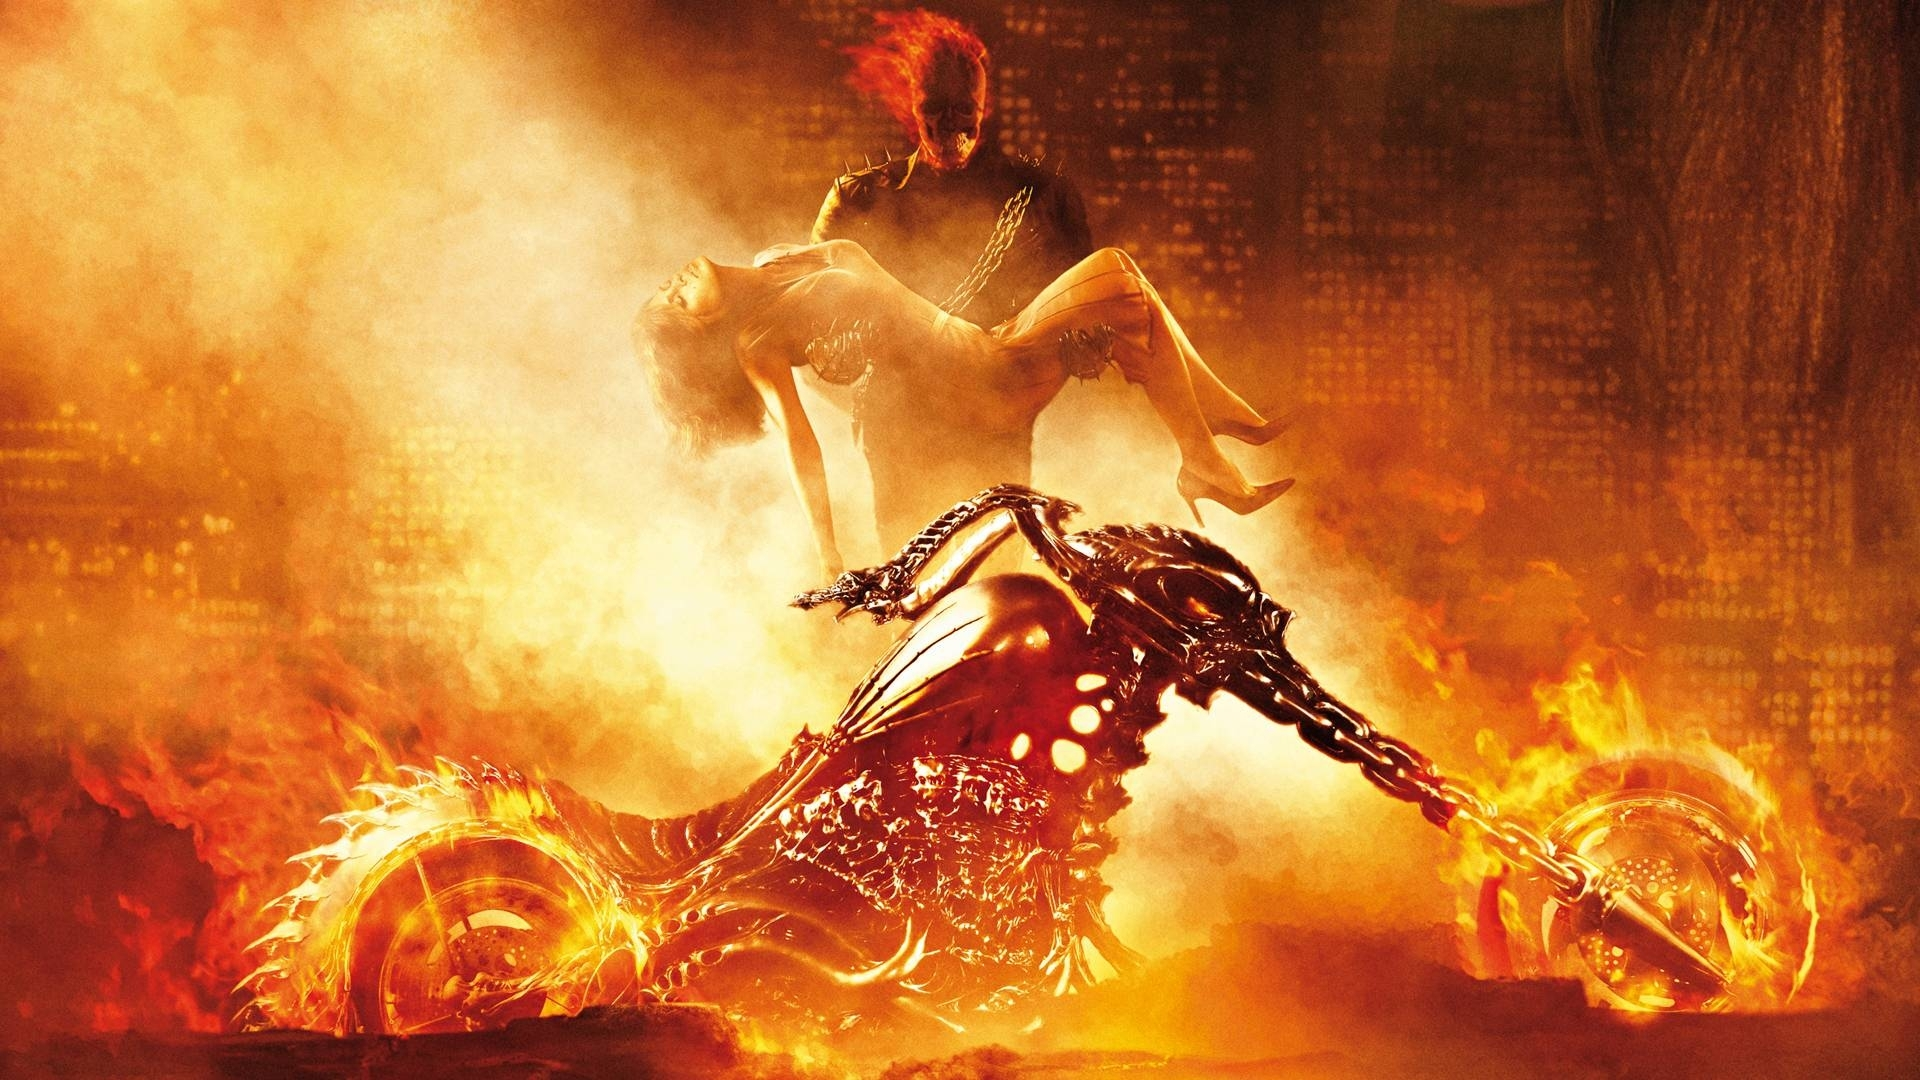 ghost rider wallpapers | ghost rider backgrounds and images (49